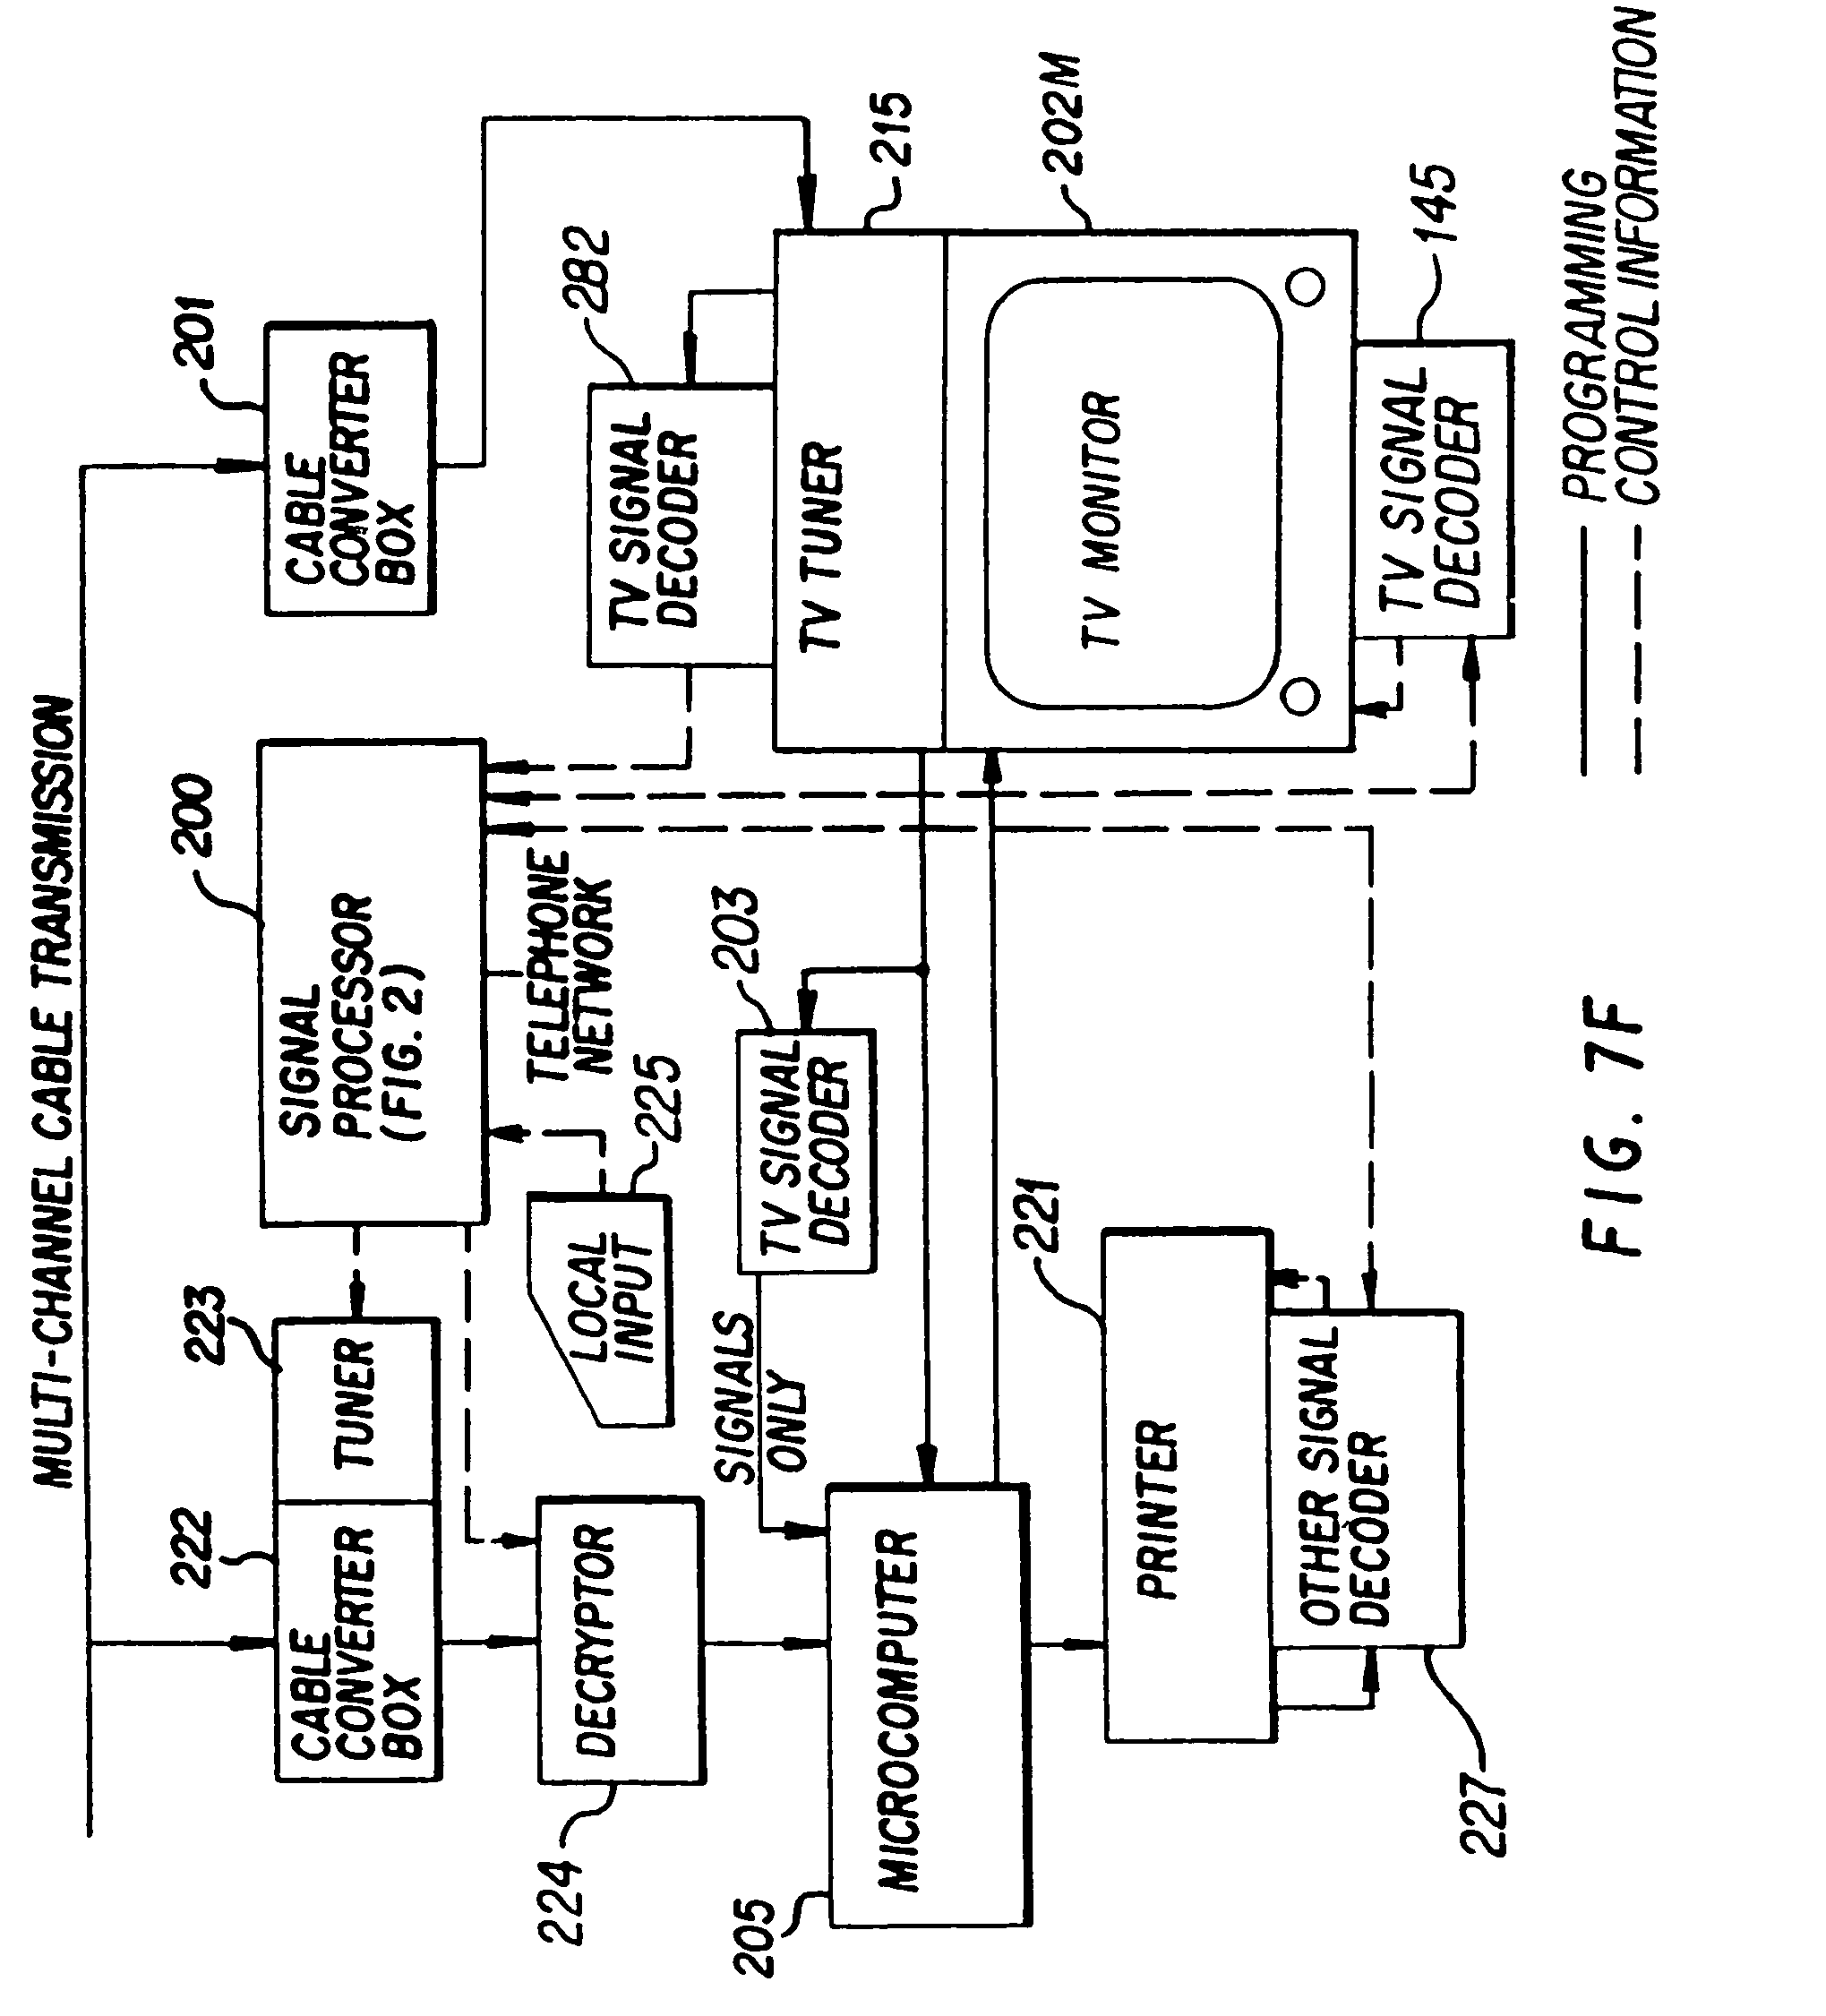 Us7966640b1 Signal Processing Apparatus And Methods Google Patents Ingersoll Case 222 Wiring Diagram